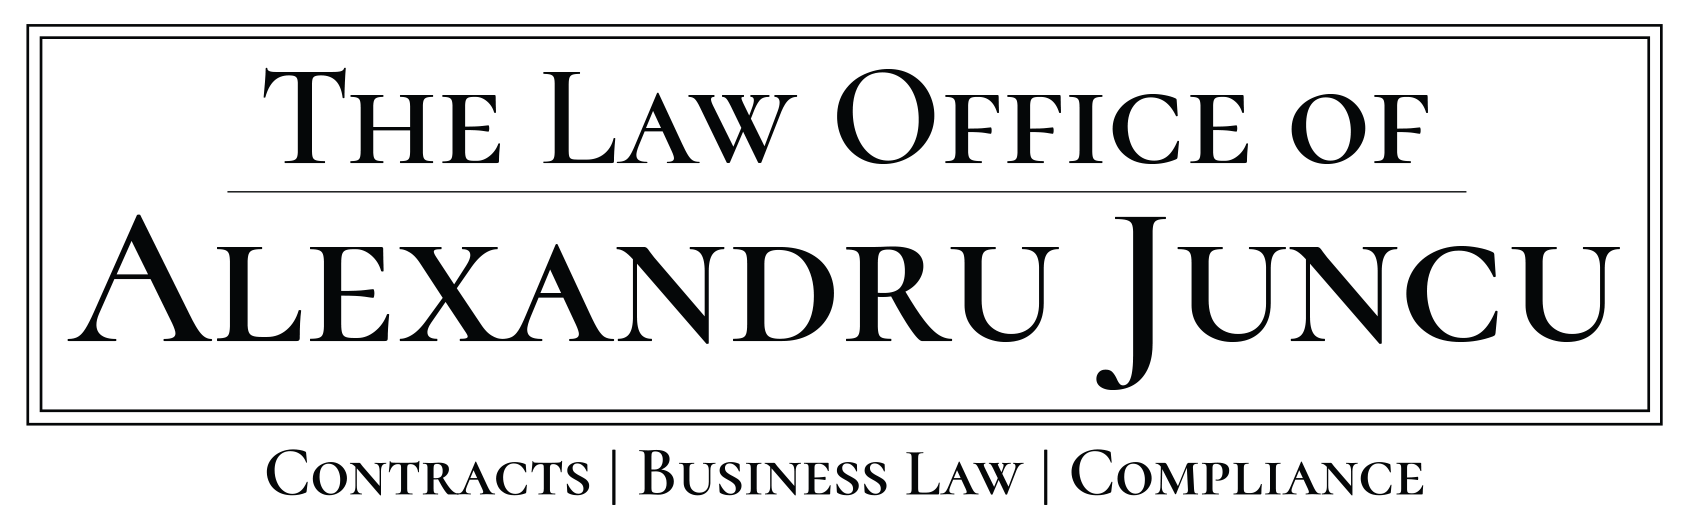 Law Office of Alexandru Juncu, LLC [Contracts, Business Law, Compliance]